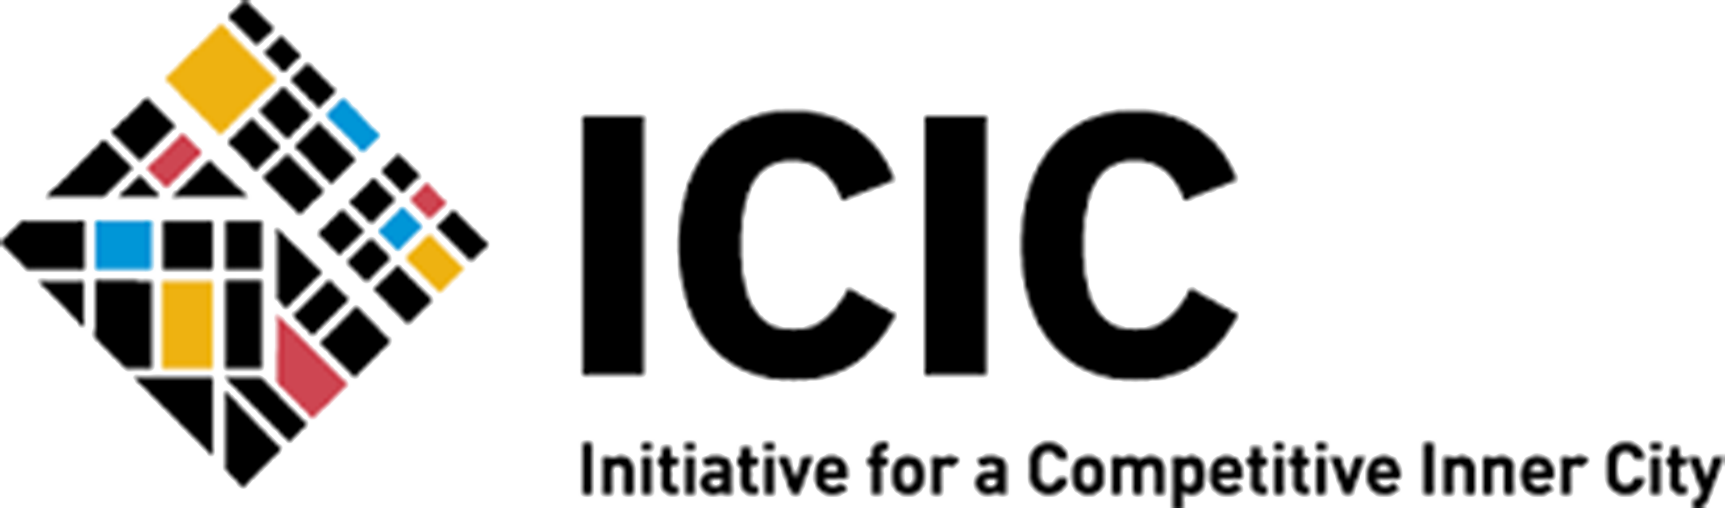 ICIC_2.png